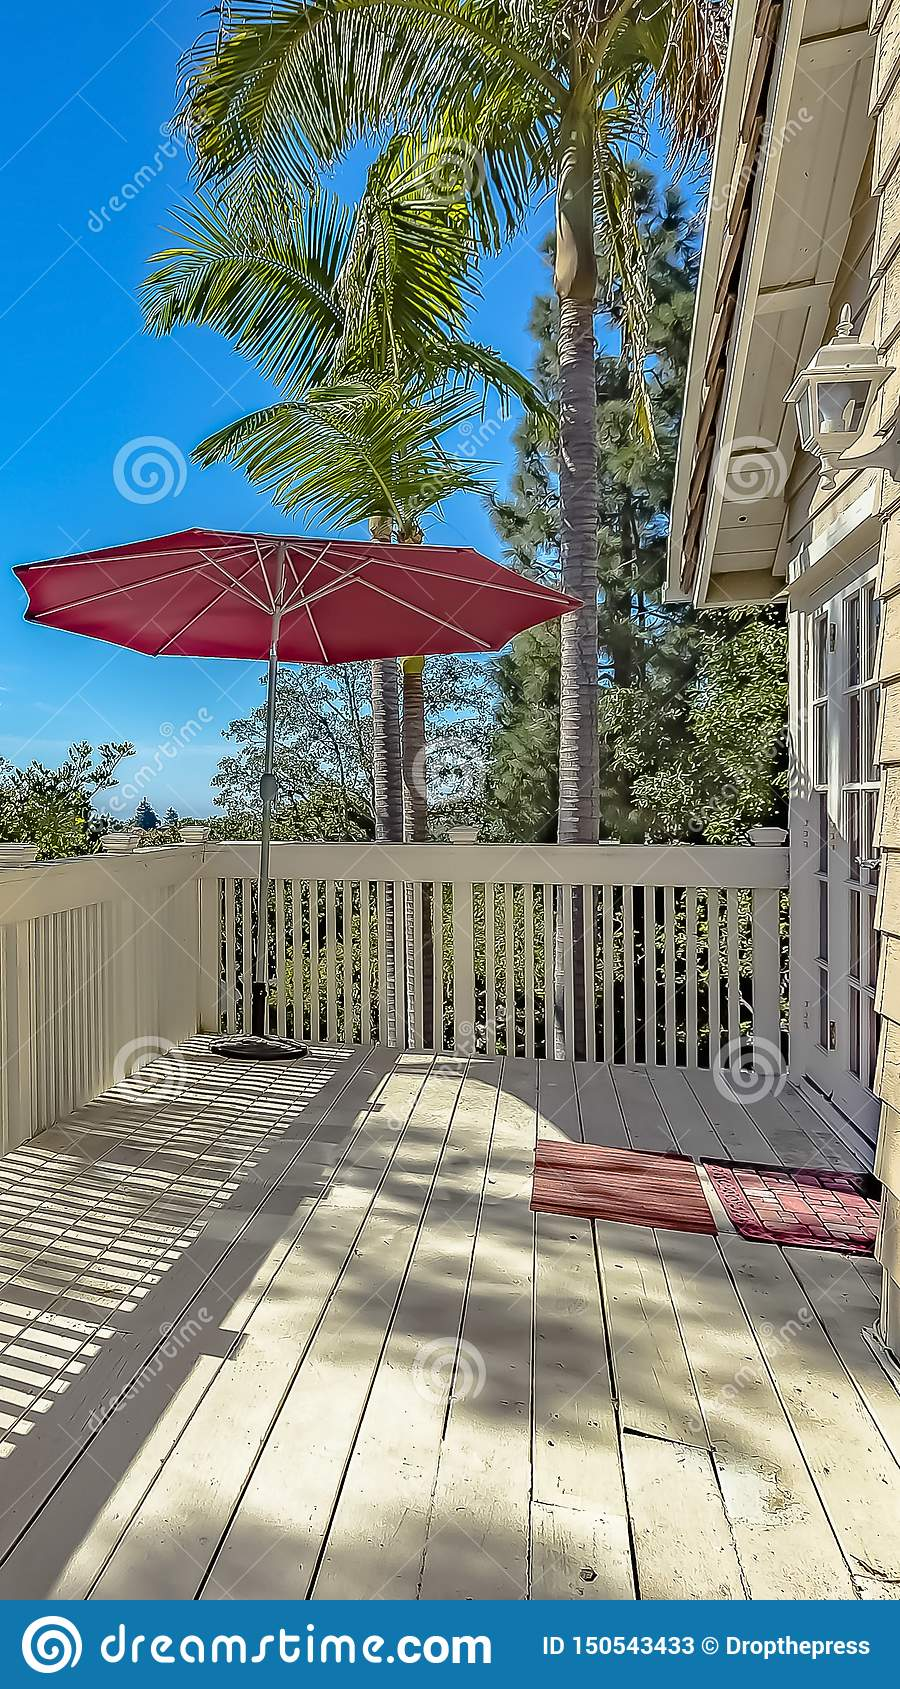 Vertical frame Balcony overlooking houses and trees against bright blue sky on a sunny day